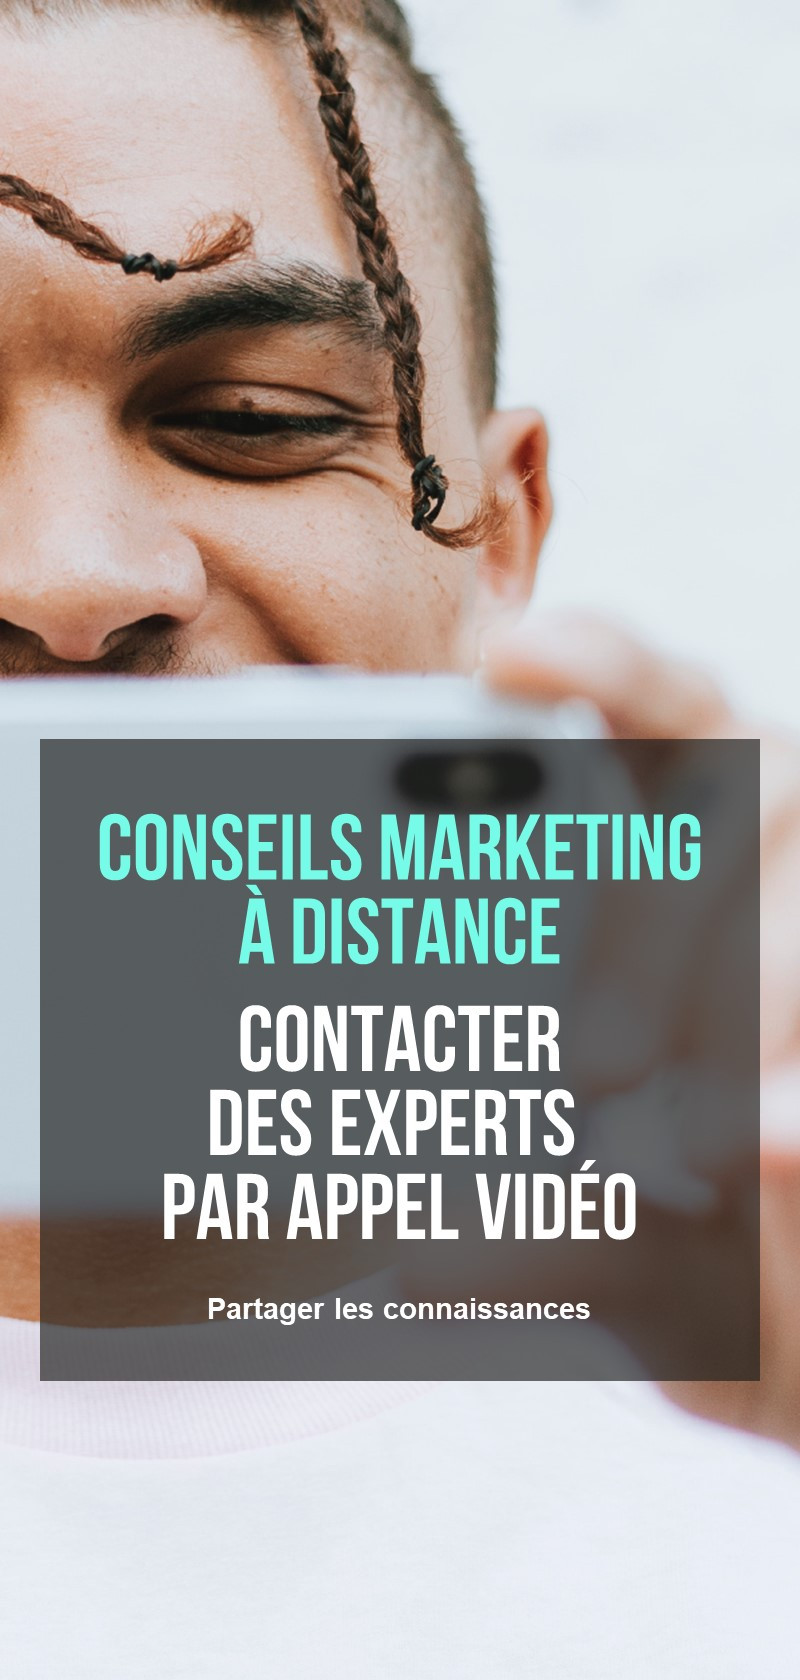 Spécialiste du marketing